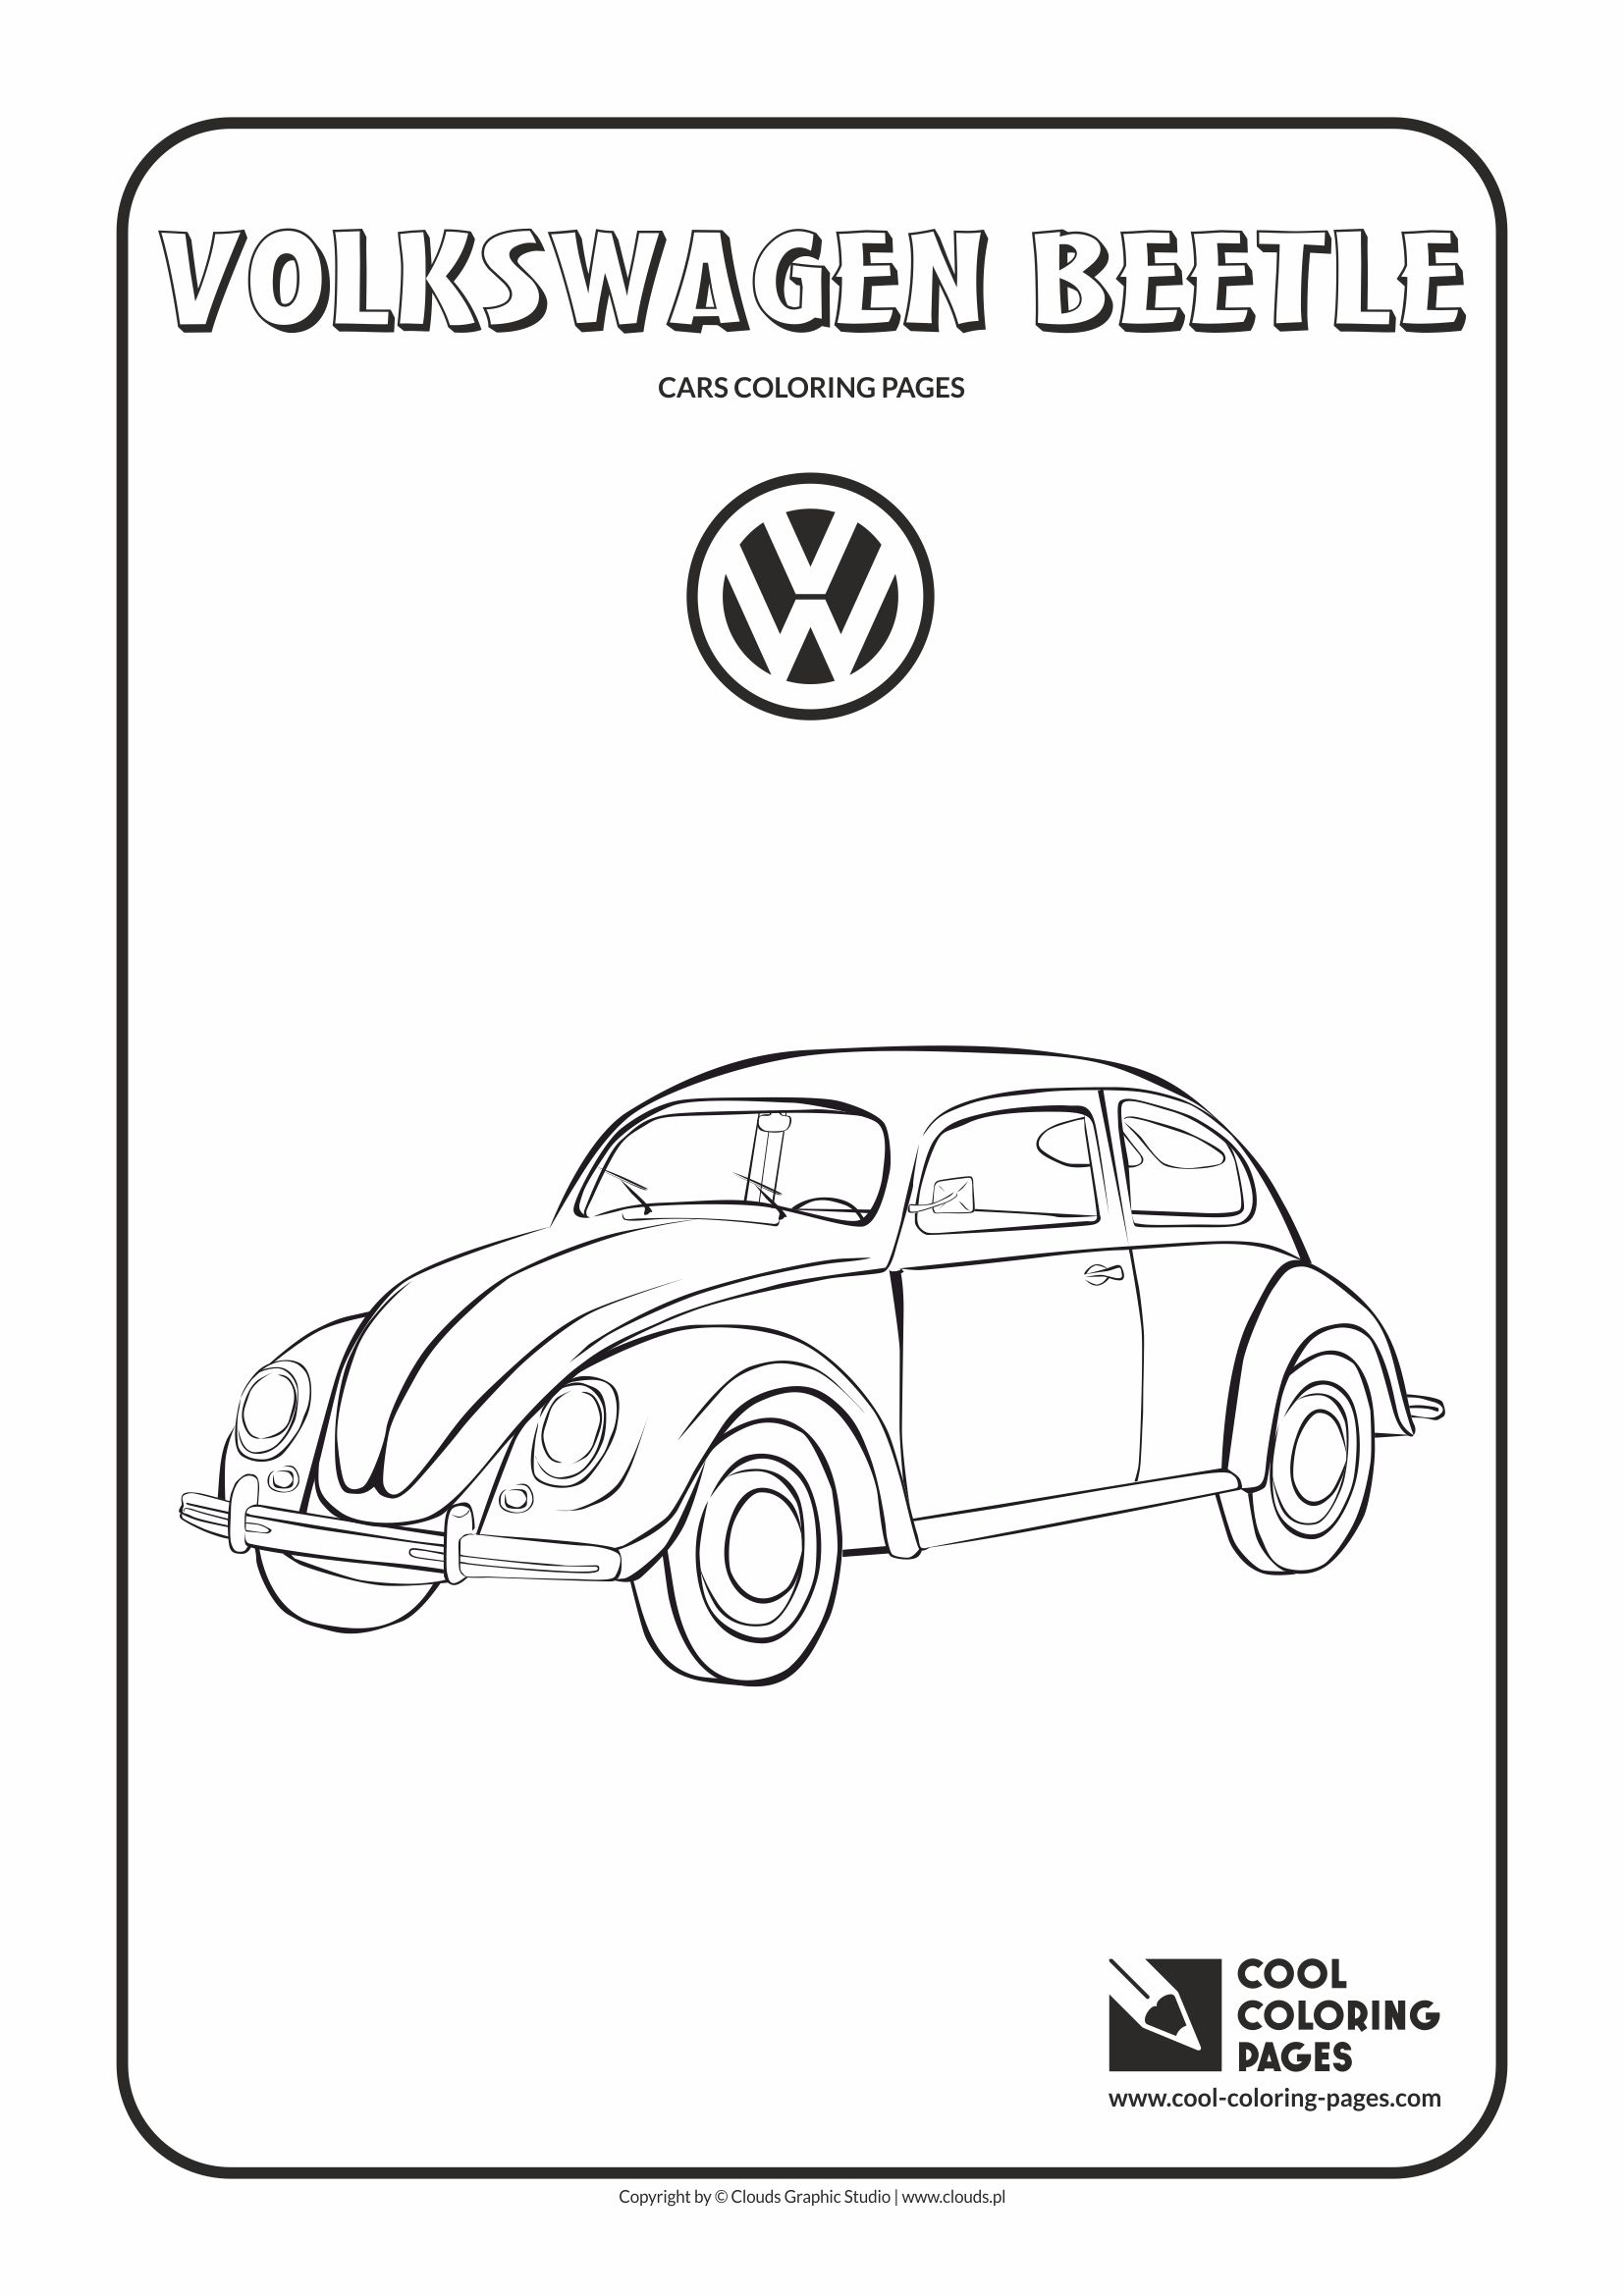 Cool Coloring Pages - Vehicles / Volkswagen Beetle / Coloring page with Volkswagen Beetle